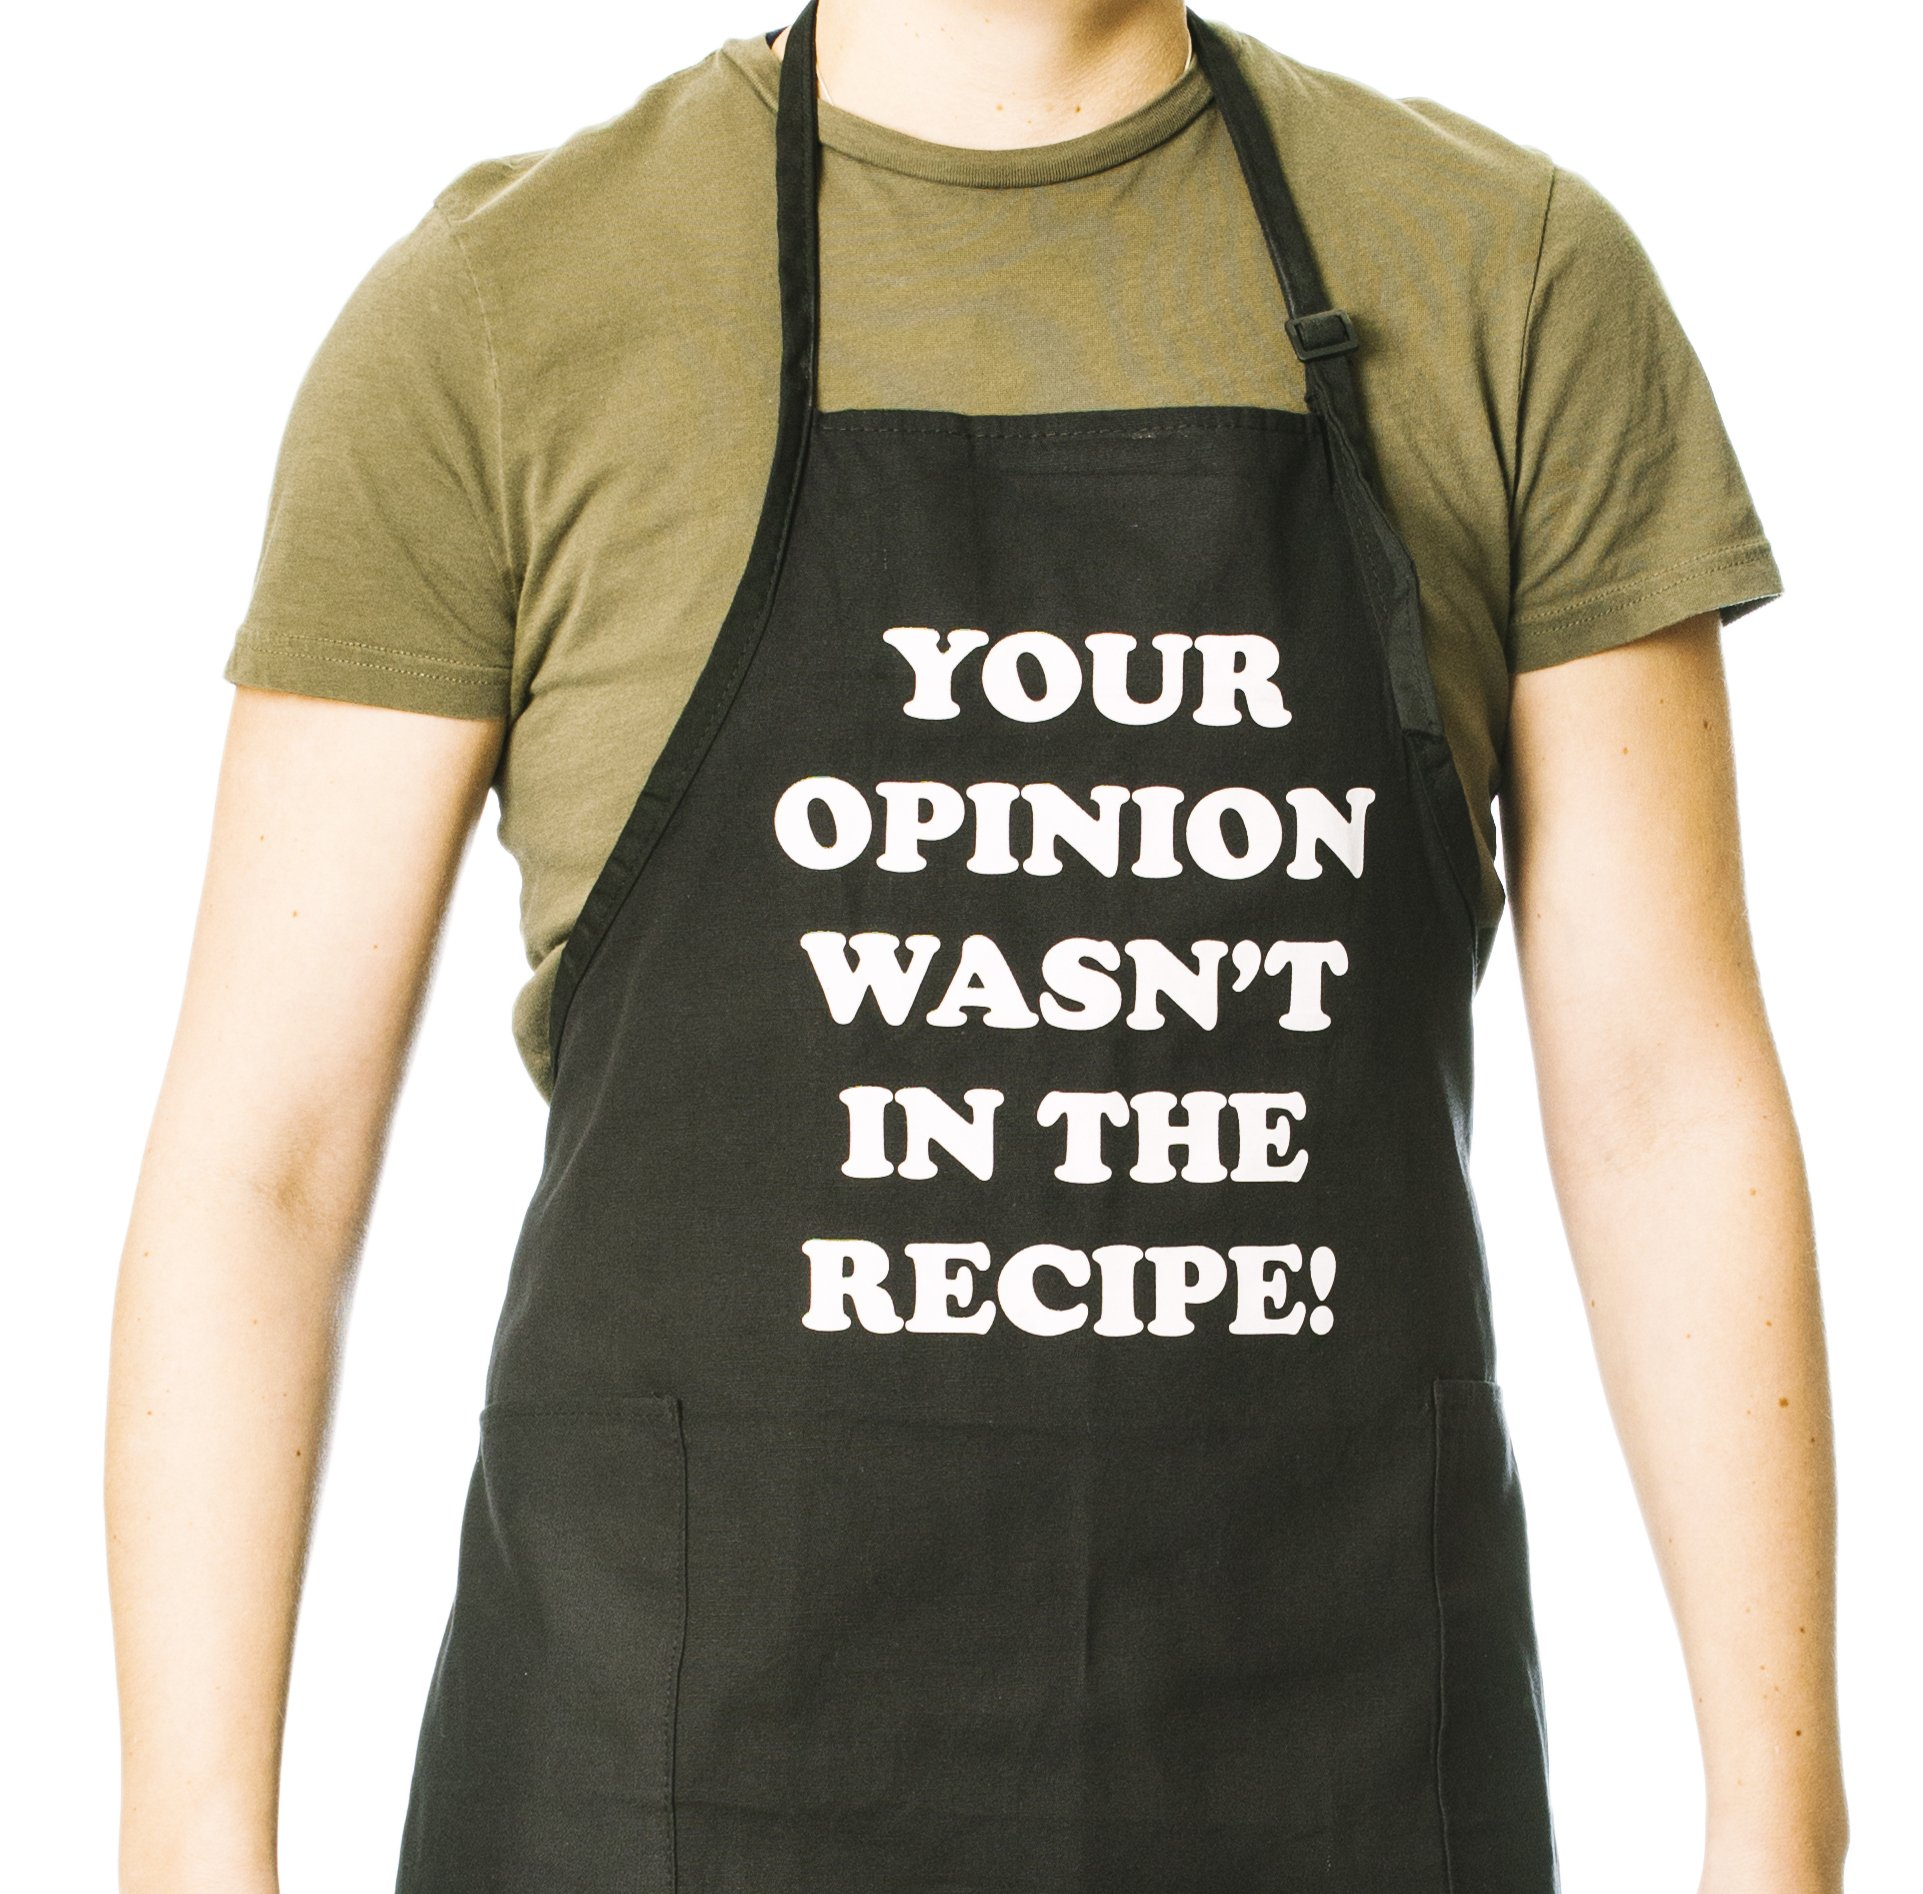 Funny Guy Mugs Your Opinion Wasn't In The Recipe Adjustable Apron with Pockets by Funny Guy Mugs